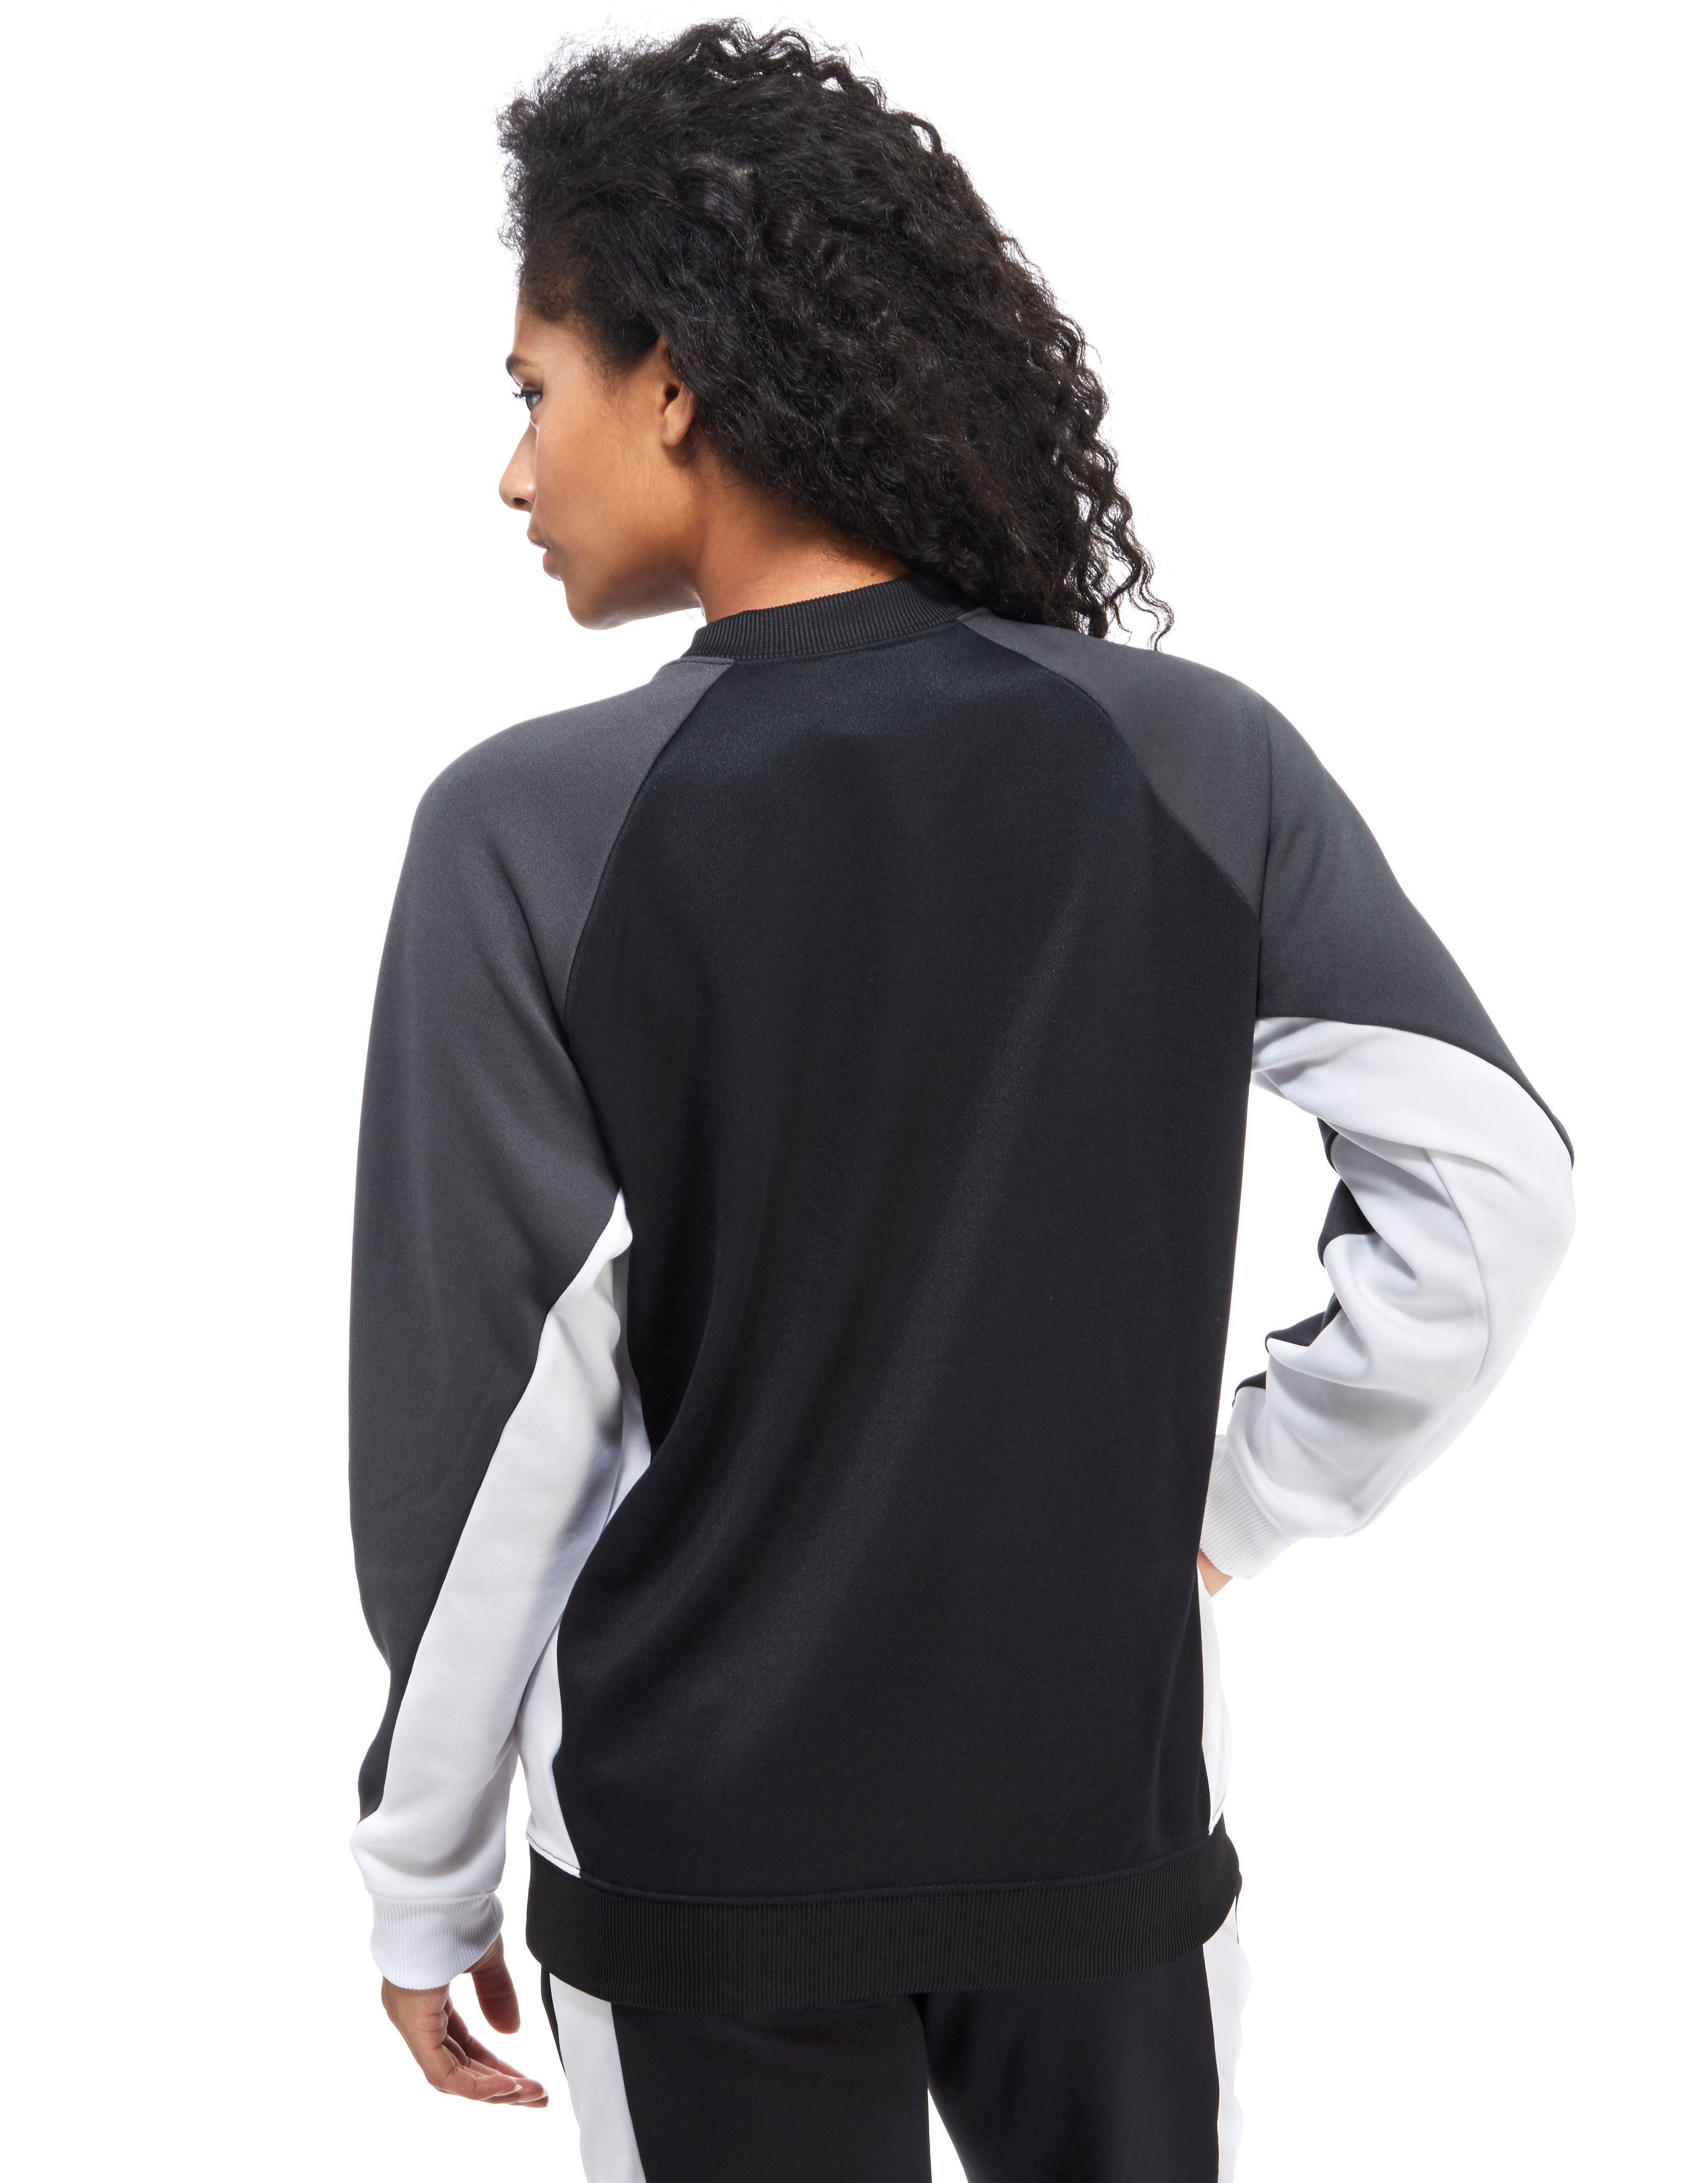 Crew Sweater In Black Lyst Block Colour Nike Poly xwB4U6Ifaq